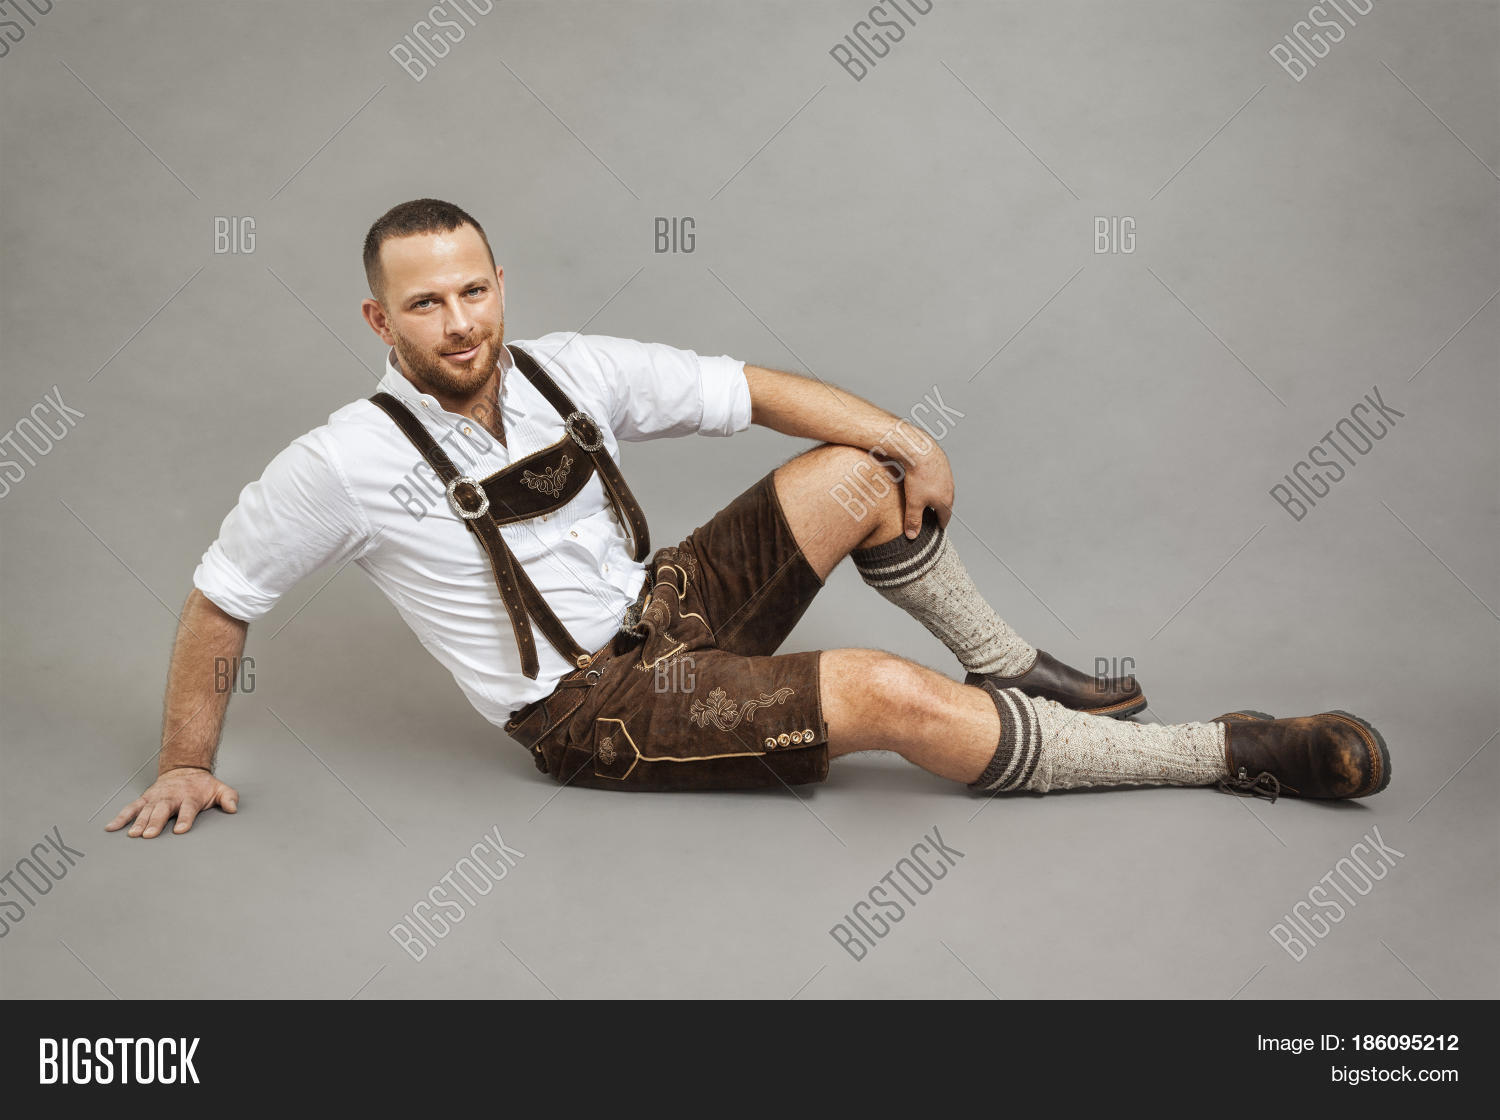 alone,alpine,bavarian,bearded,brown,caucasian,clothes,comfort,costume,enjoy,festival,fun,german,grey,guy,handsome,happy,horizontal,isolated,leather,lederhosen,leisure,lying,male,man,national,oktoberfest,person,portrait,posing,relax,rest,smart,smile,studio,suspenders,traditional,typical,young